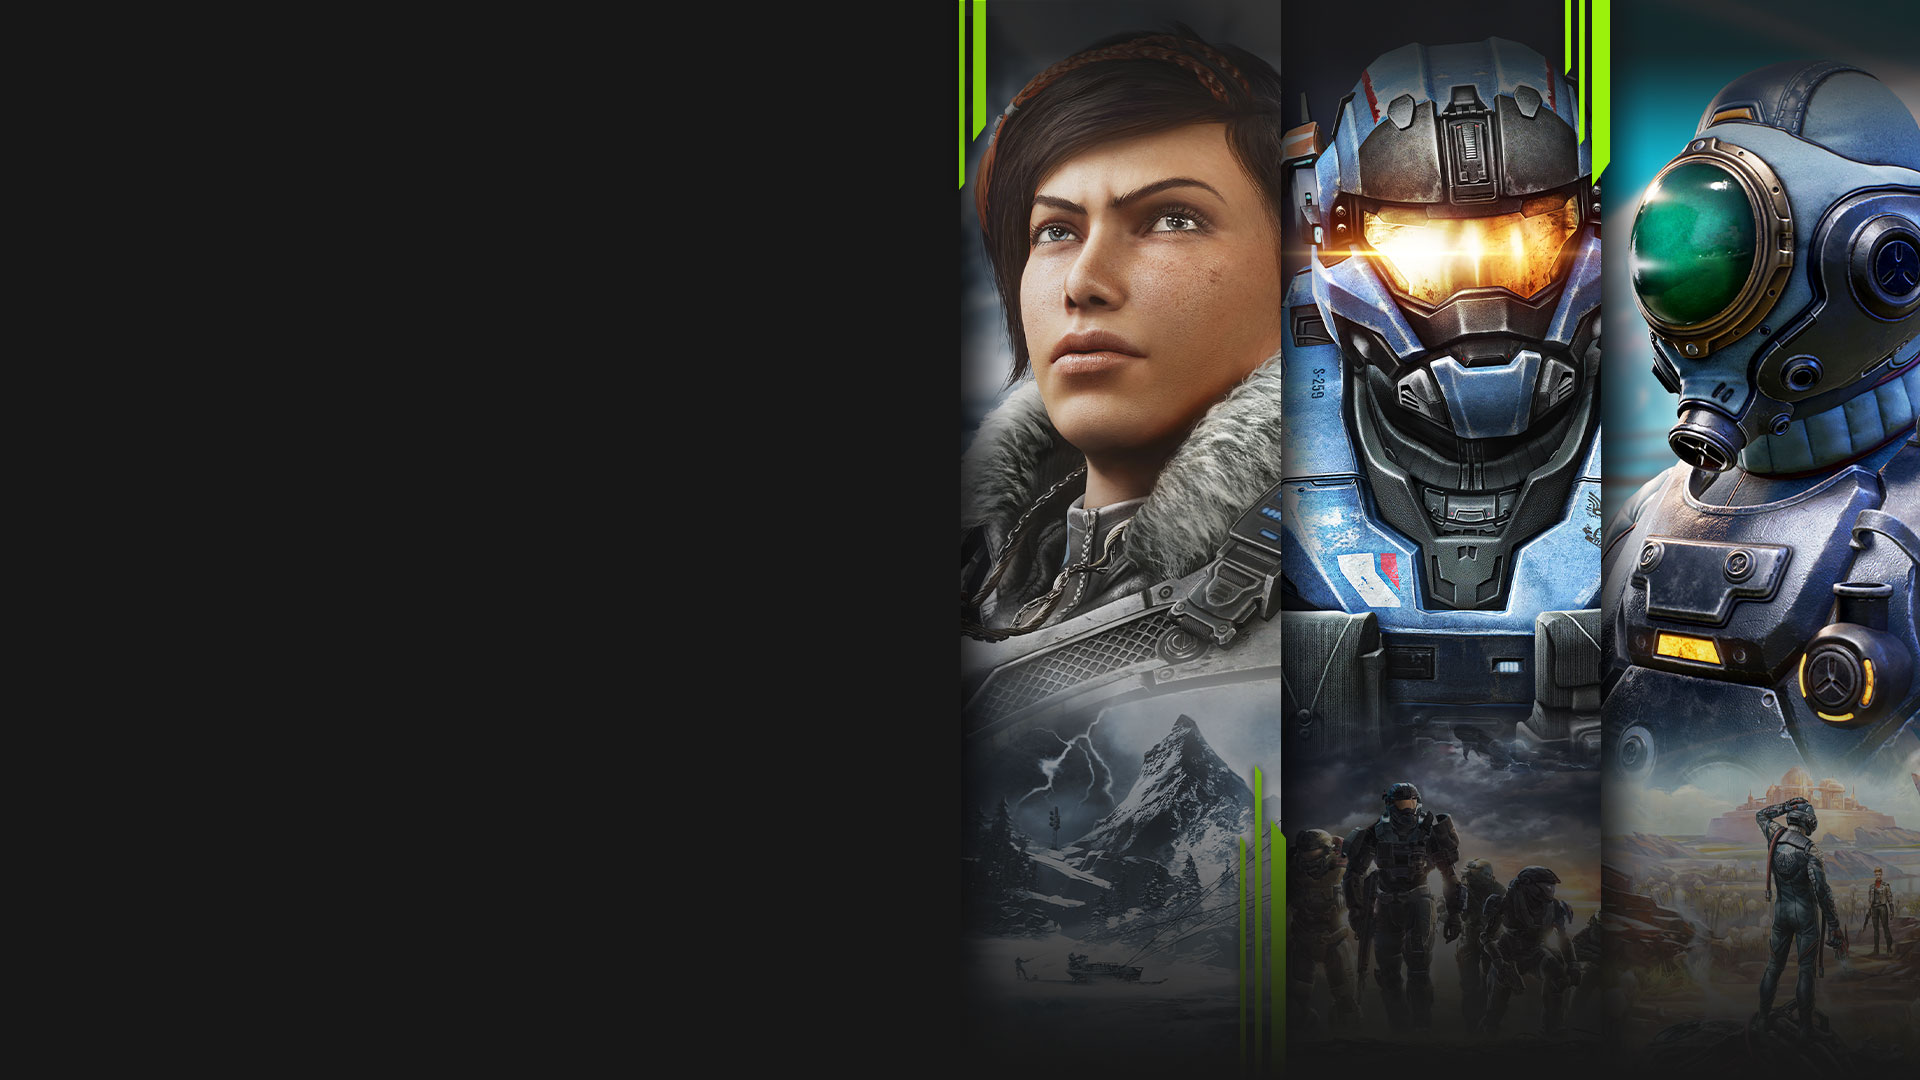 Game art from multiple games available with Xbox Game Pass including Gears 5, Halo: The Master Chief Collection, and The Outer Worlds.